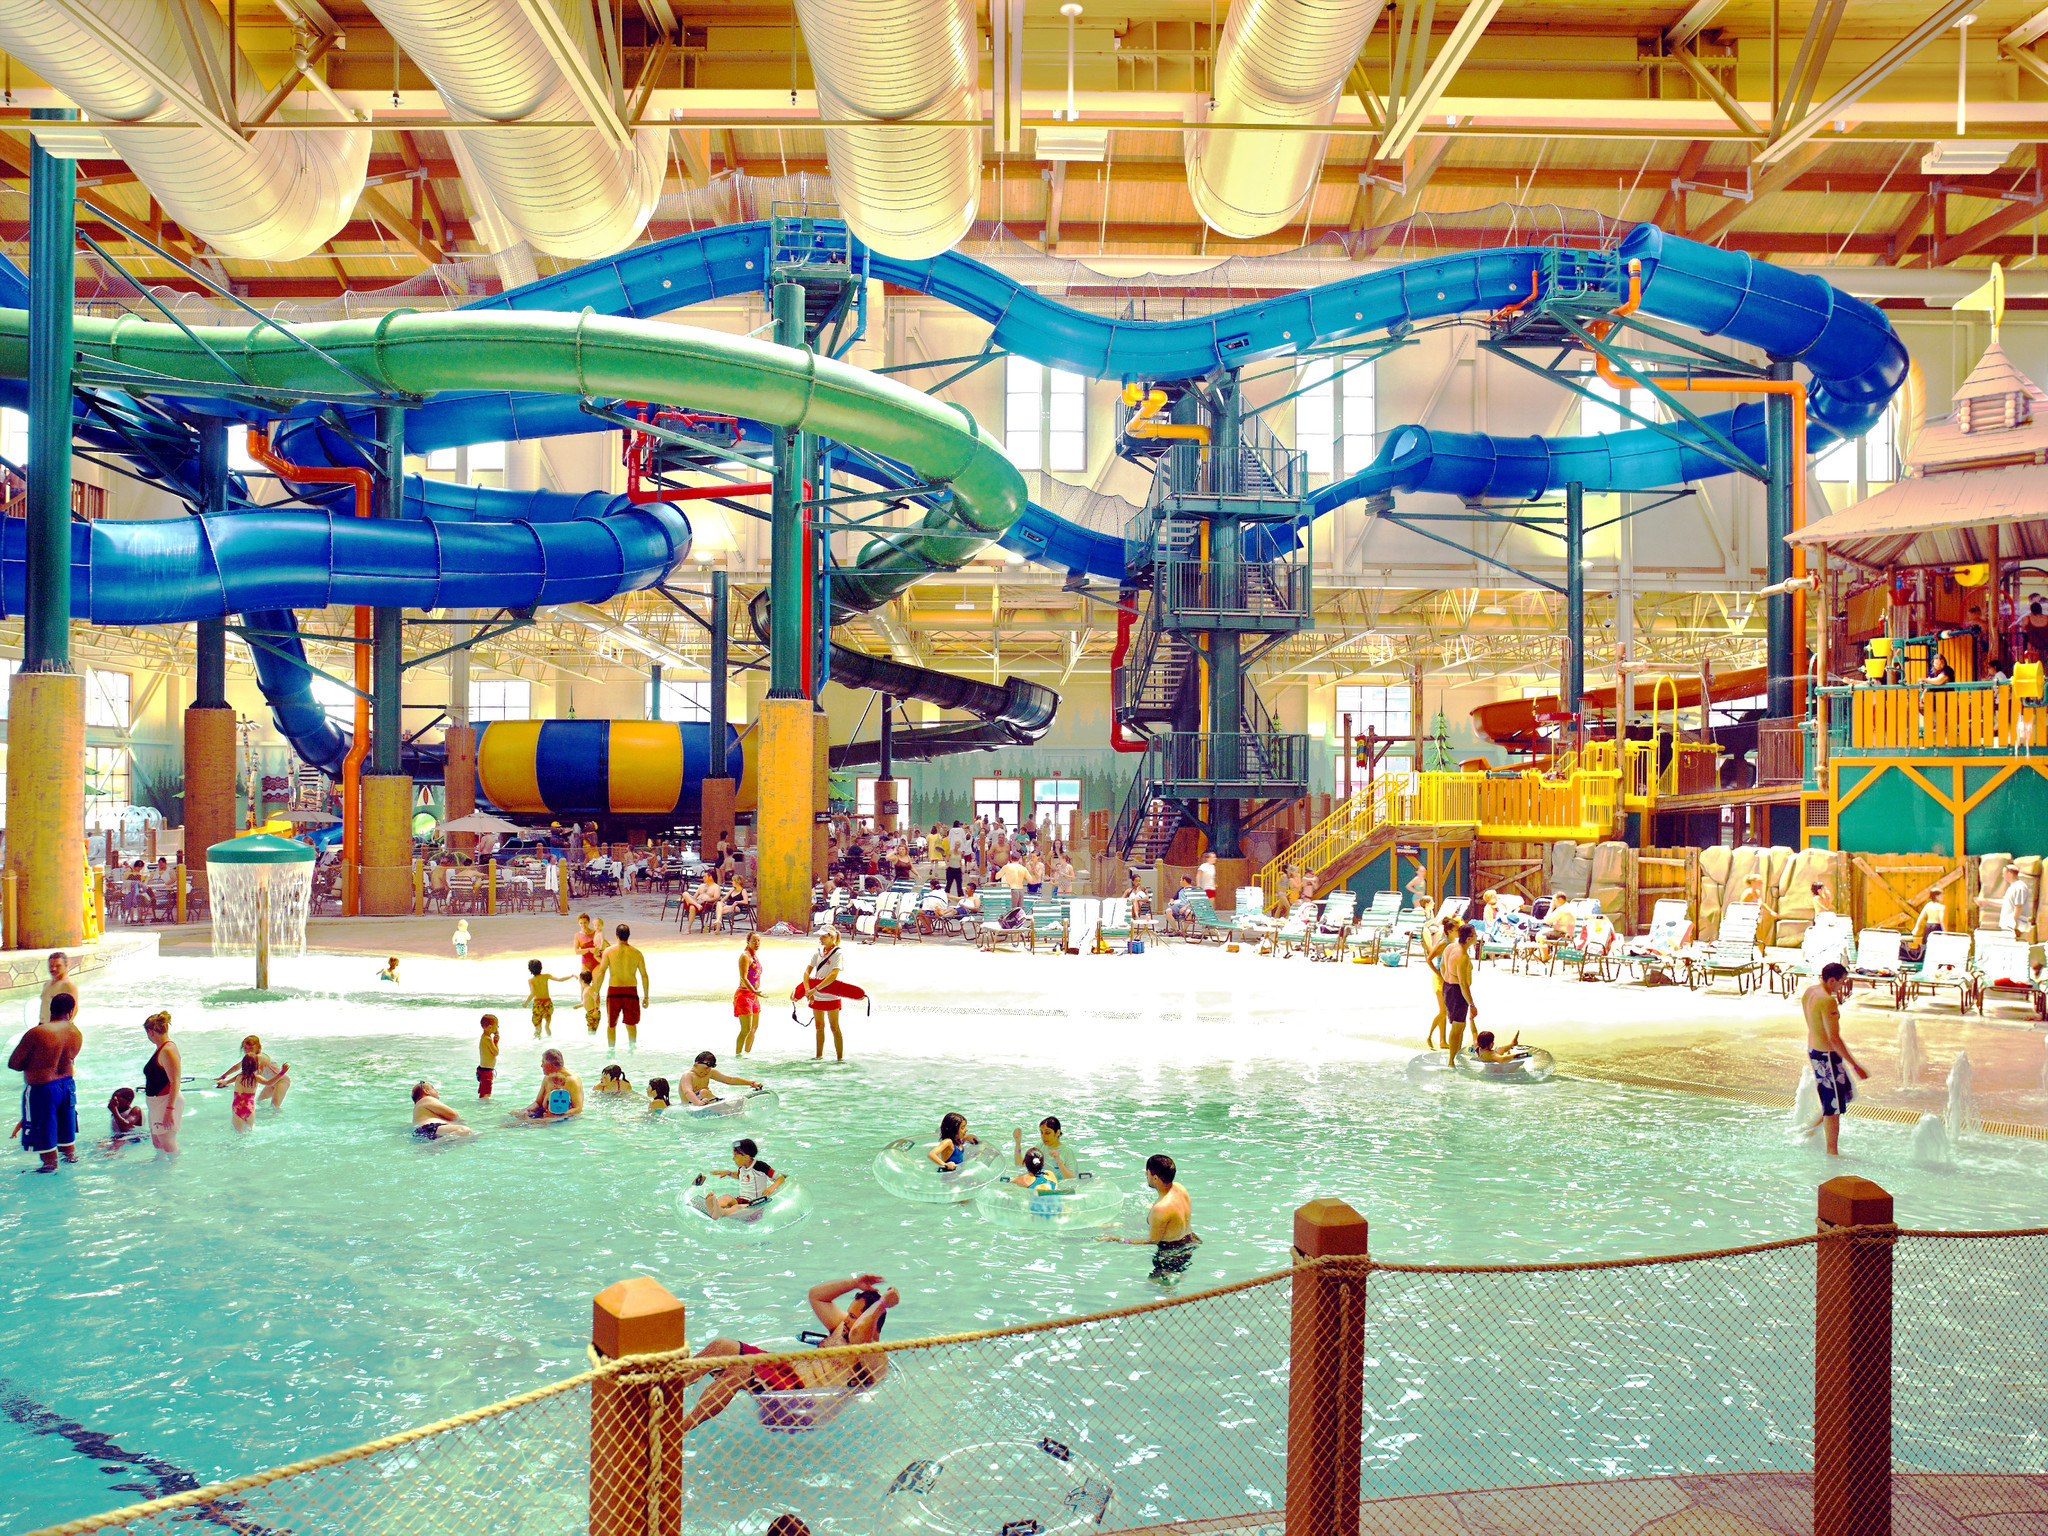 15 places to take the kids in howard county howard county times - Cool Indoor Pools With Slides